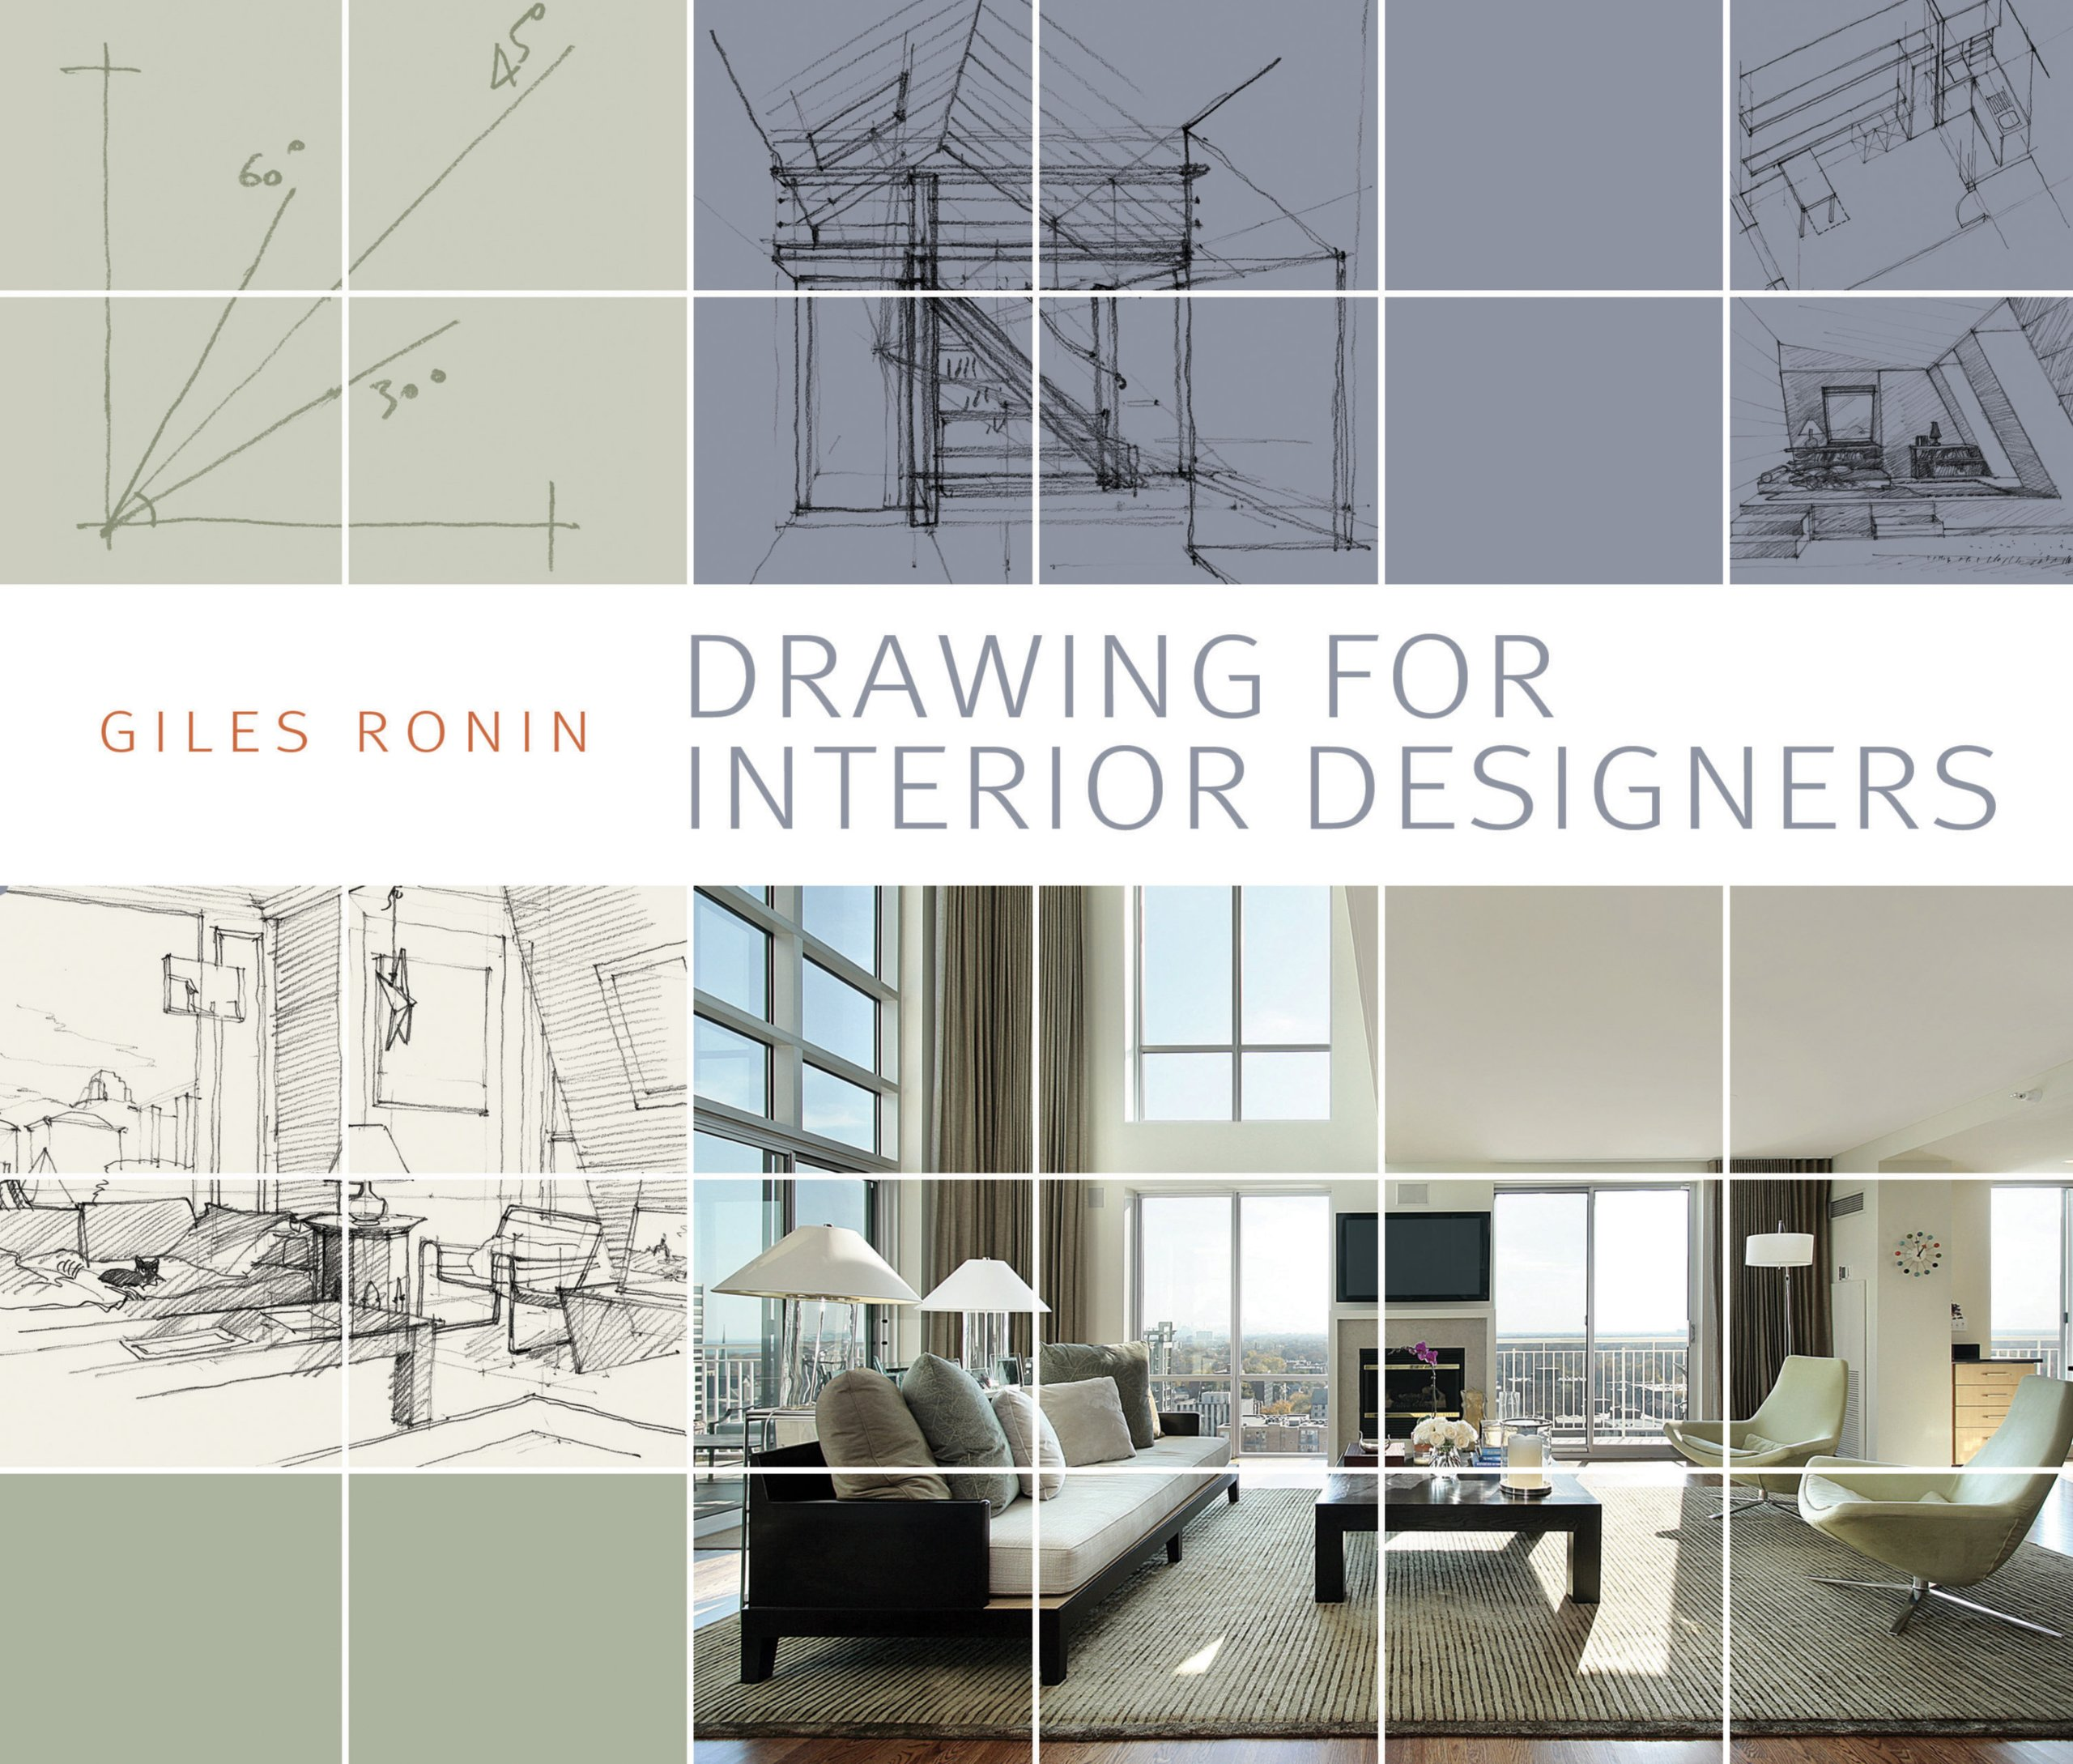 amazoncom drawing for interior designers 9781408129913 gilles ronin books - Interior Design Drawings